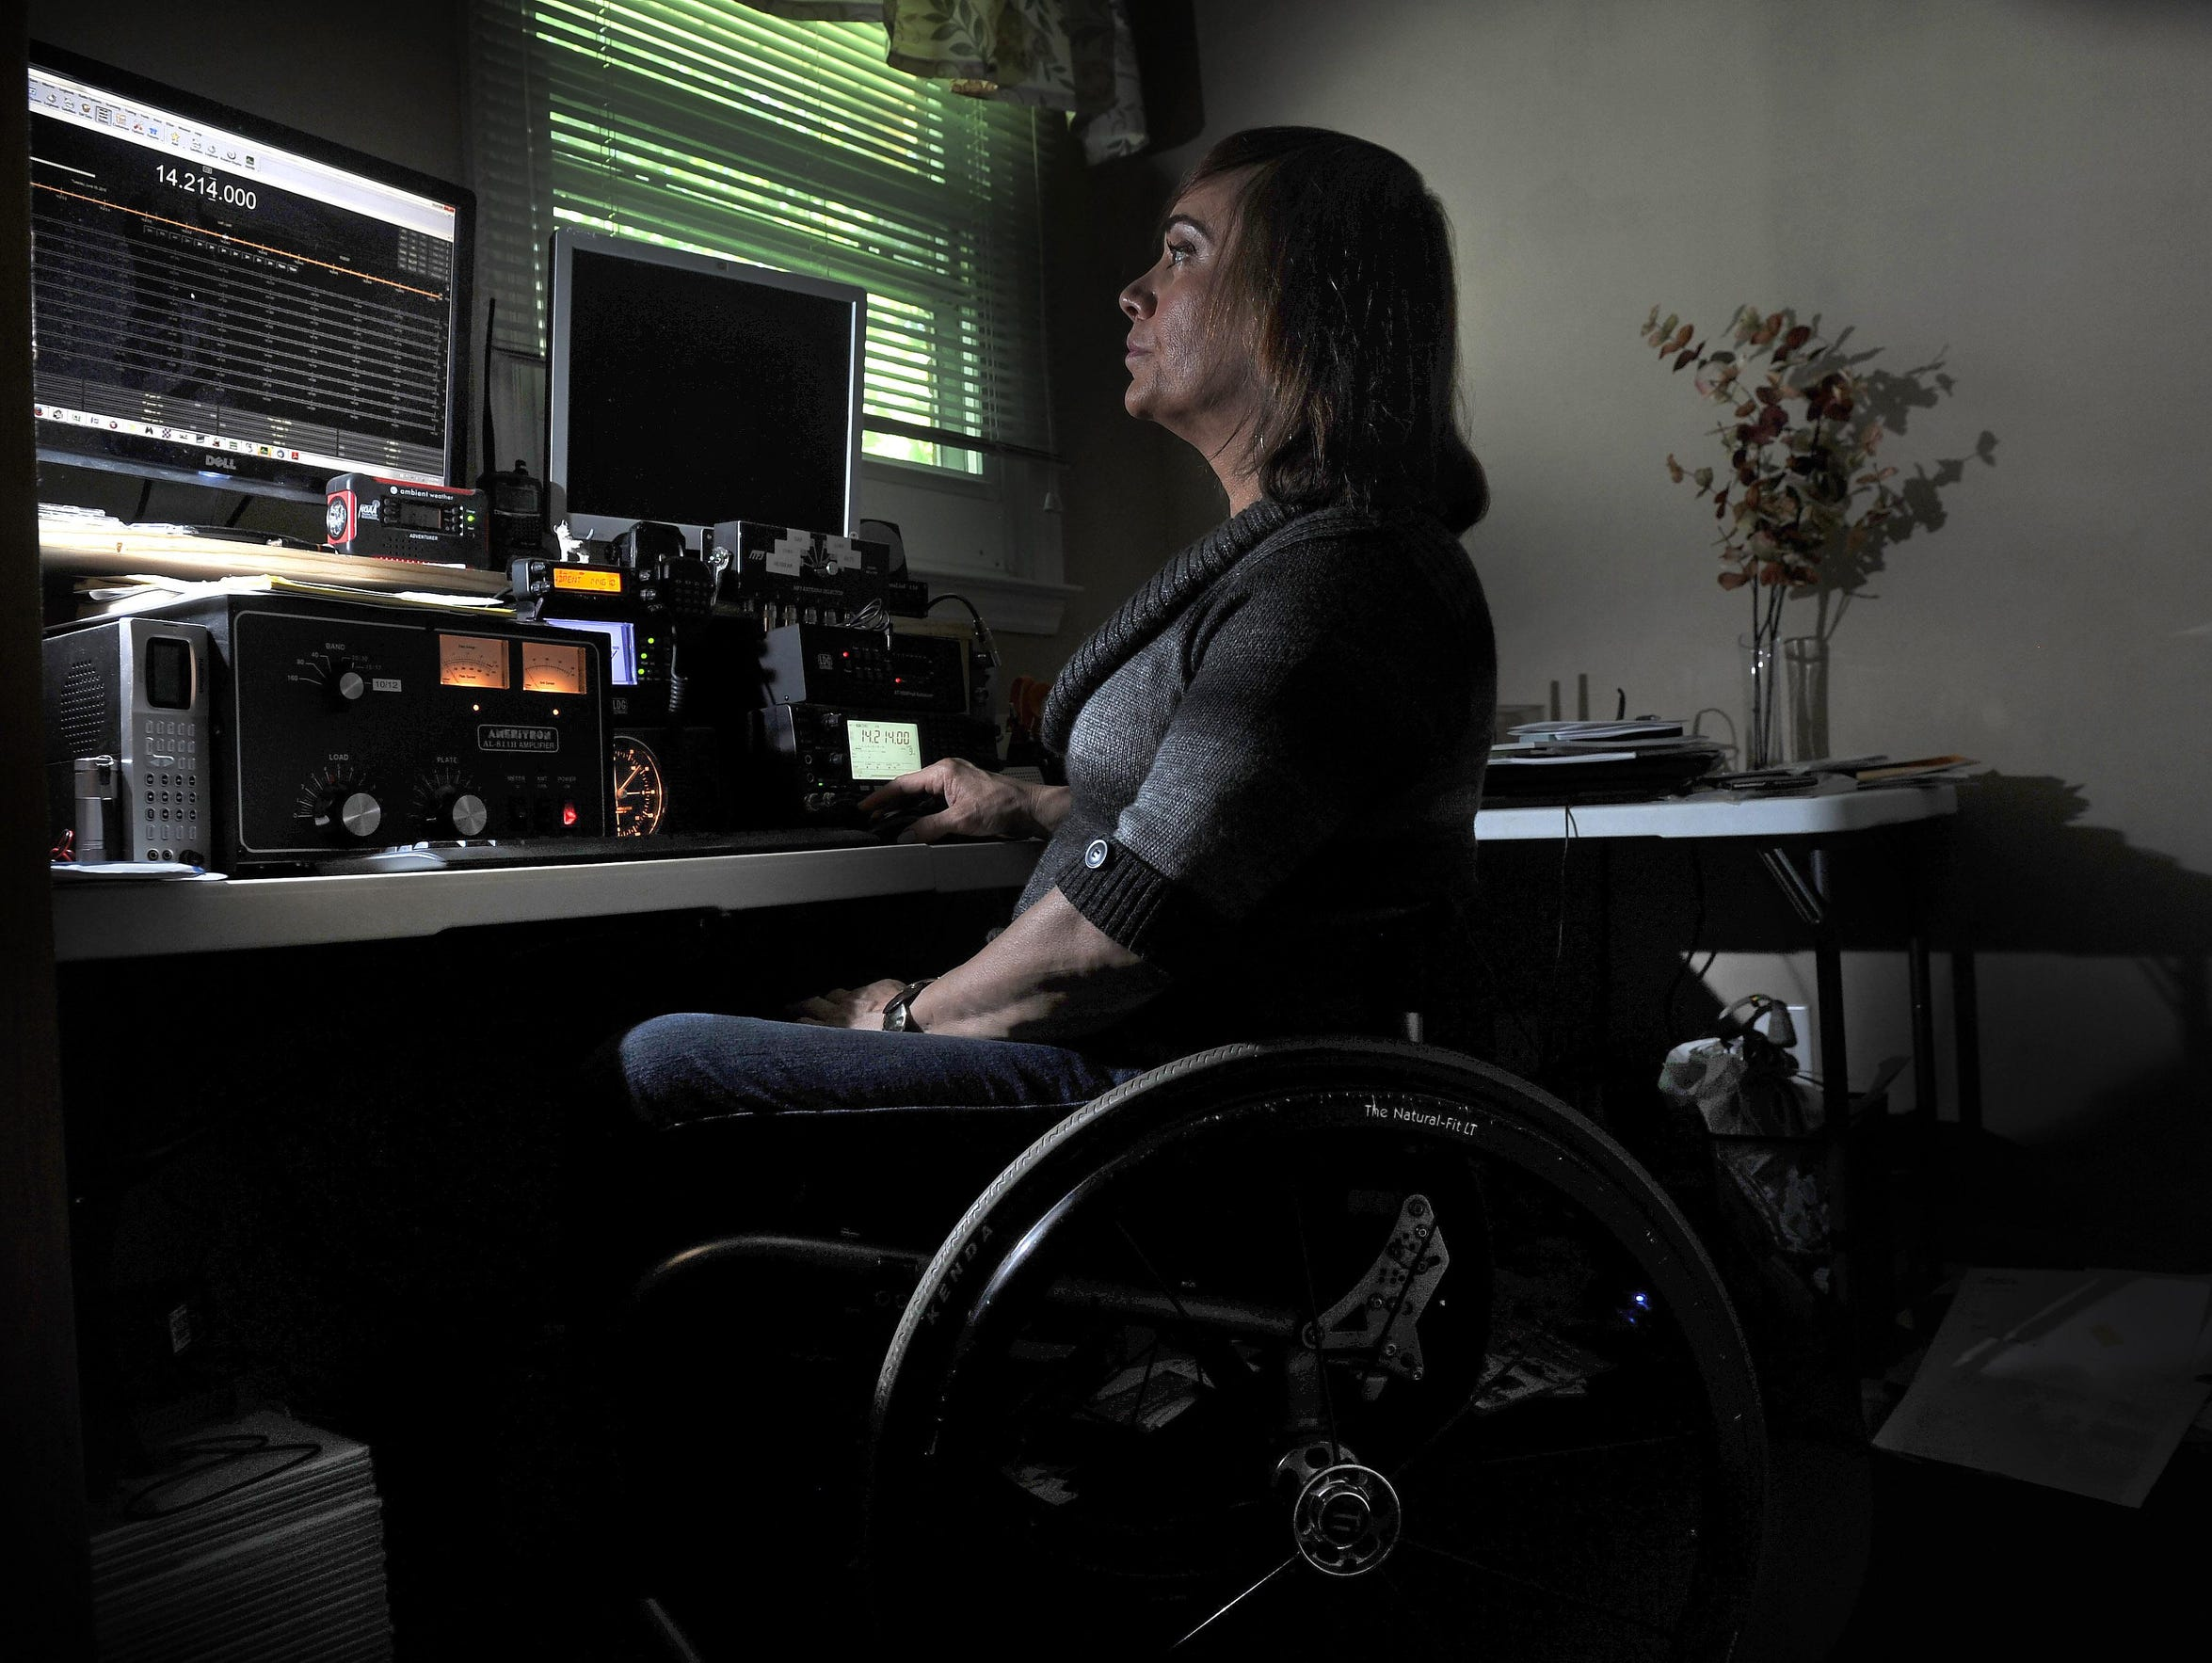 Robin Patty is a HAM radio operator and has transmitters